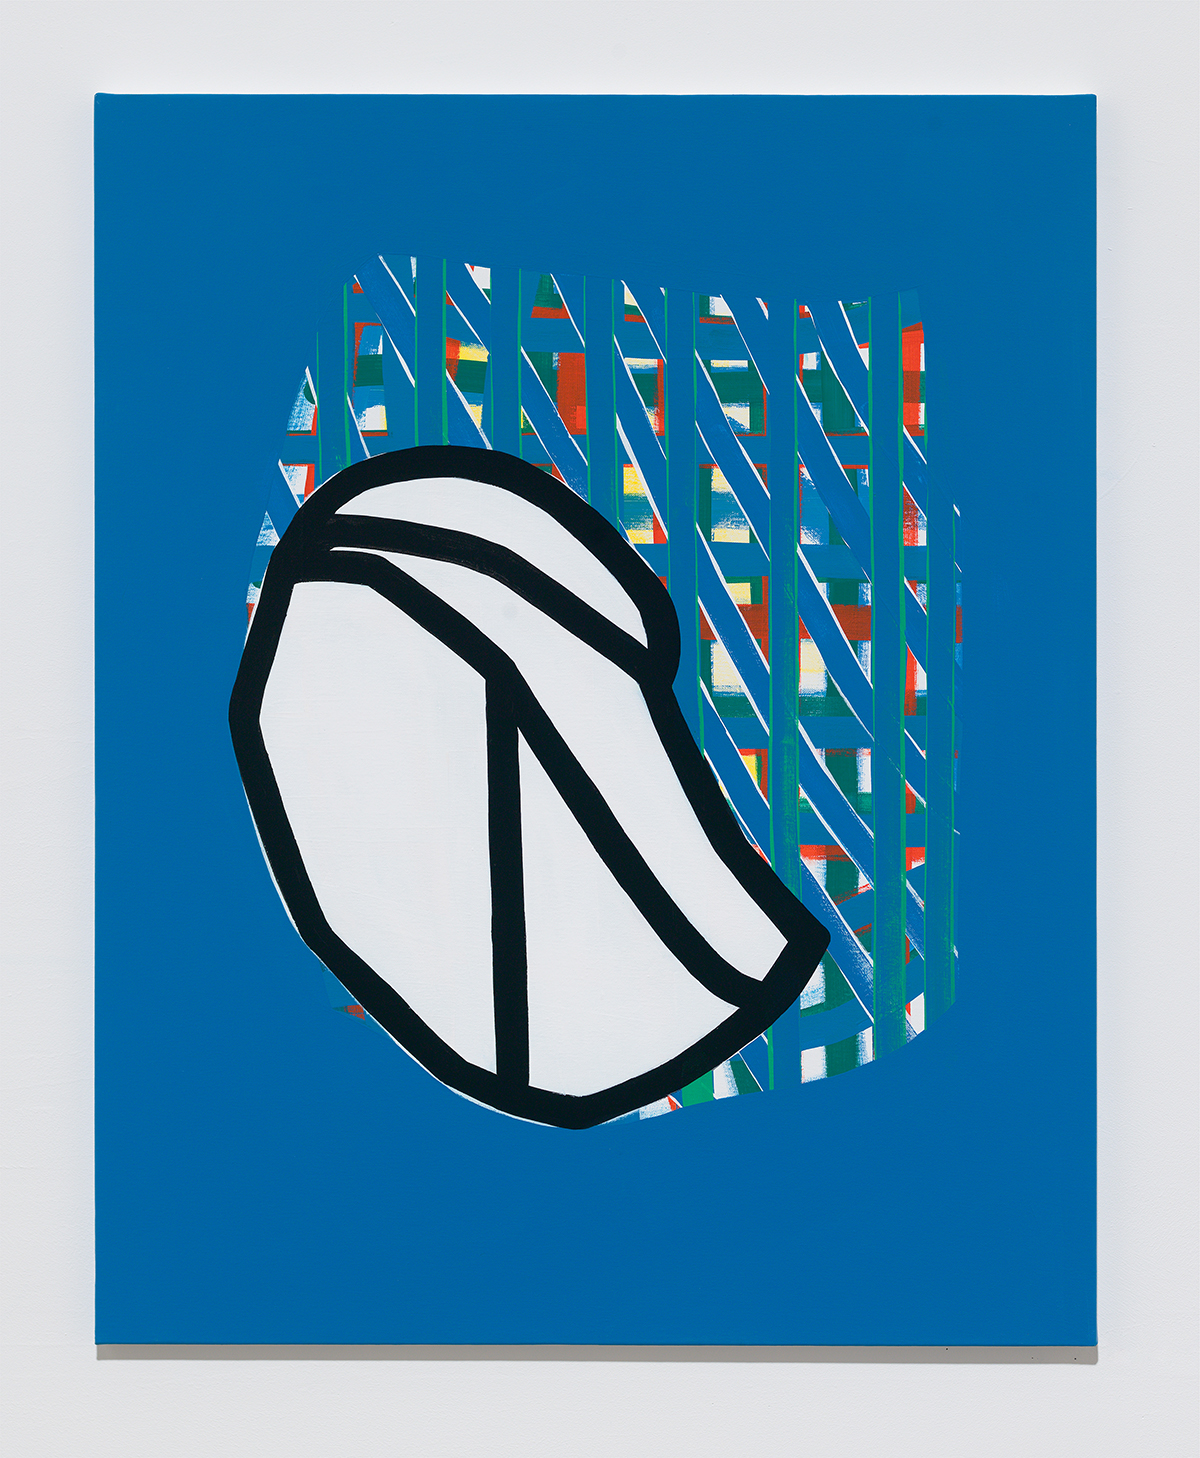 Soo Kyoung Lee, nouvelle abstraction